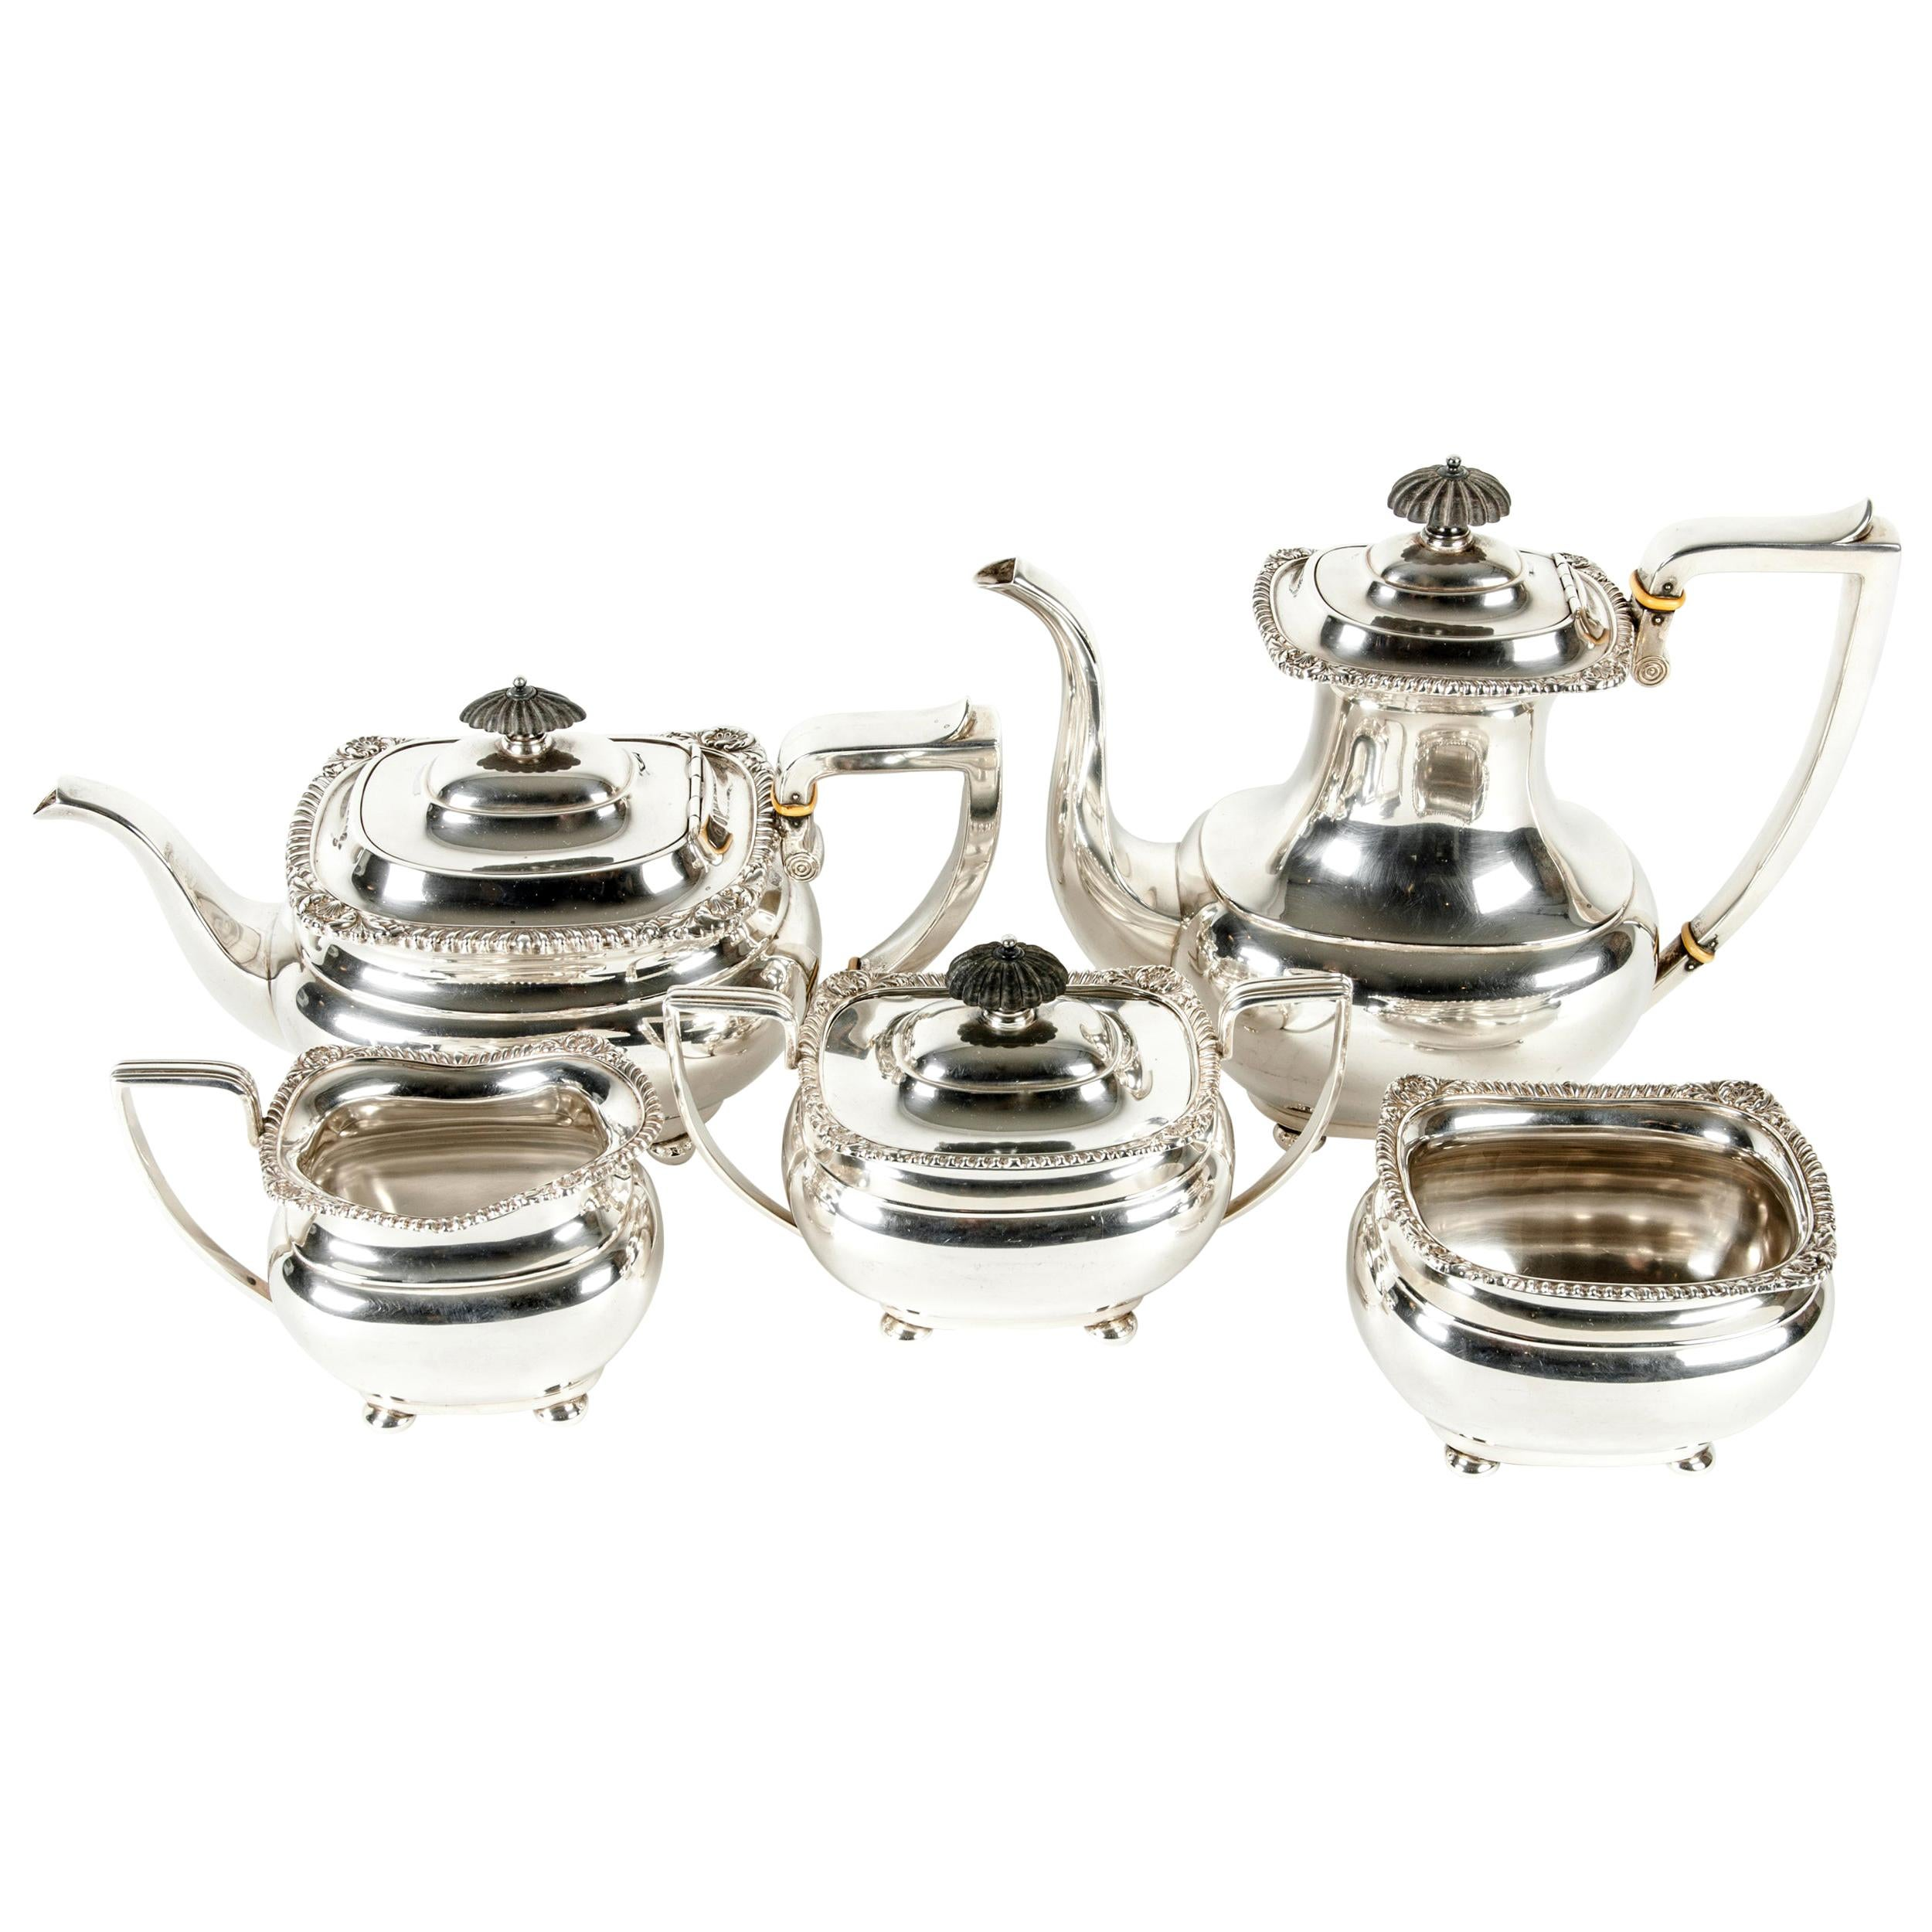 Late 19th Century Sterling Silver Tea and Coffee Service